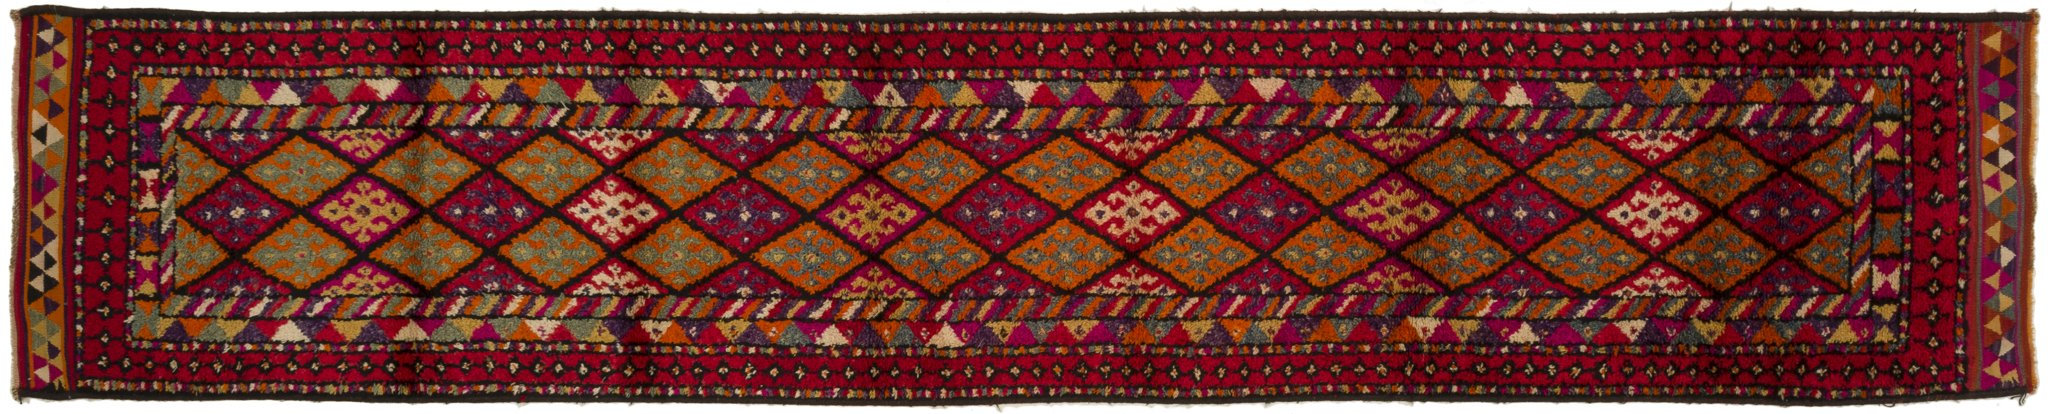 Vintage Turkish Runner Rug Gerline